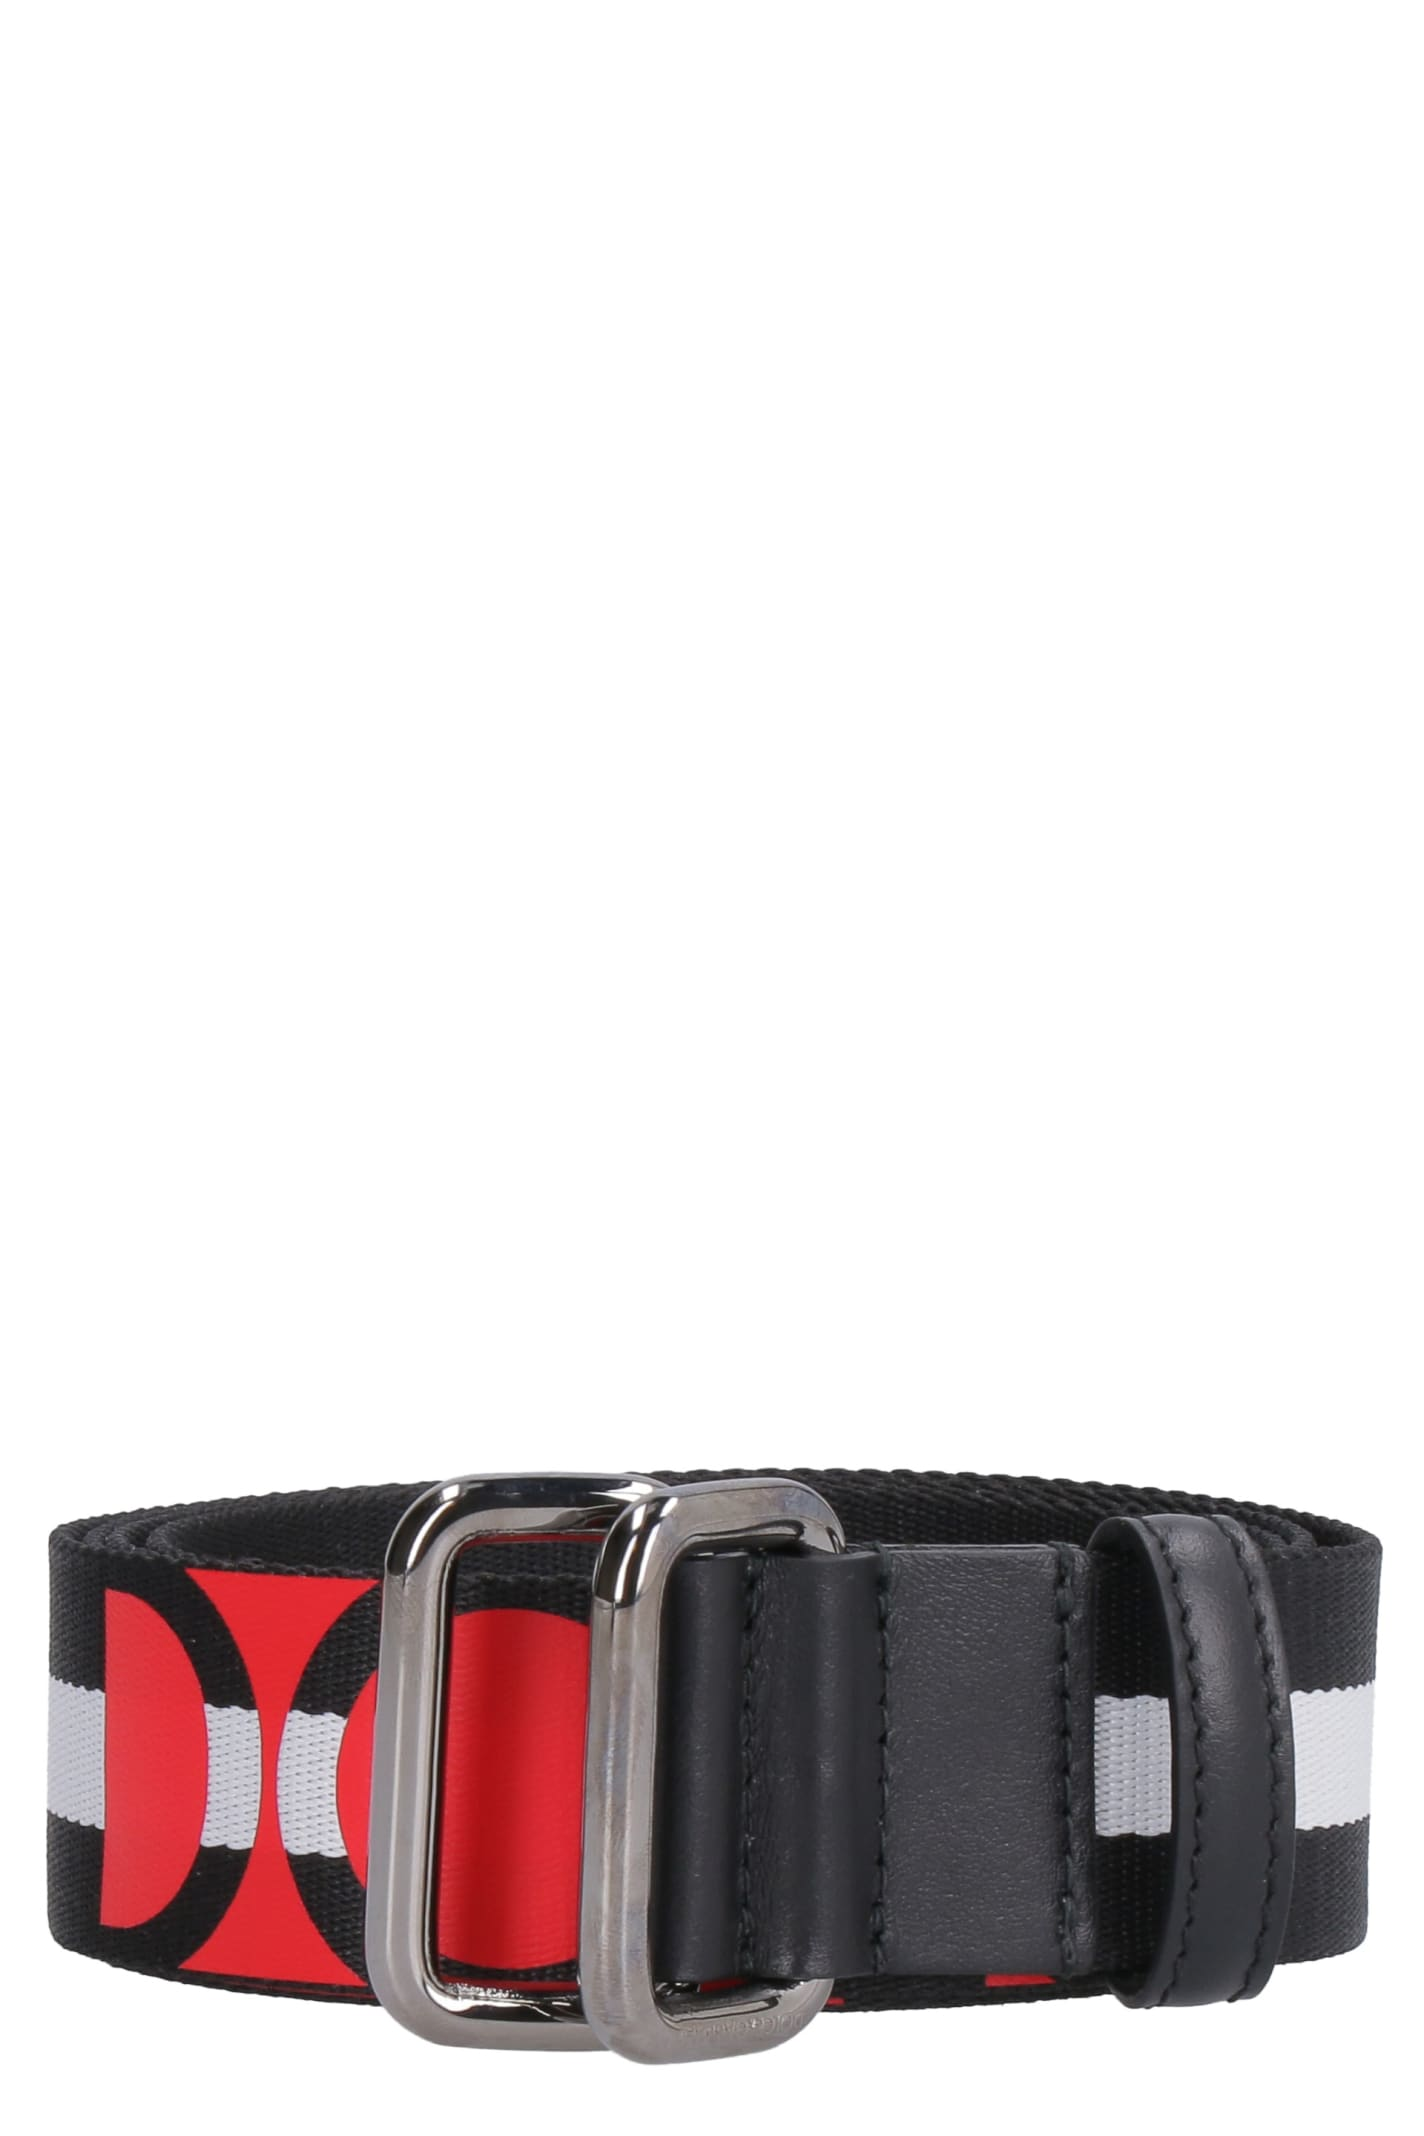 Dolce & Gabbana Striped Nylon Belt